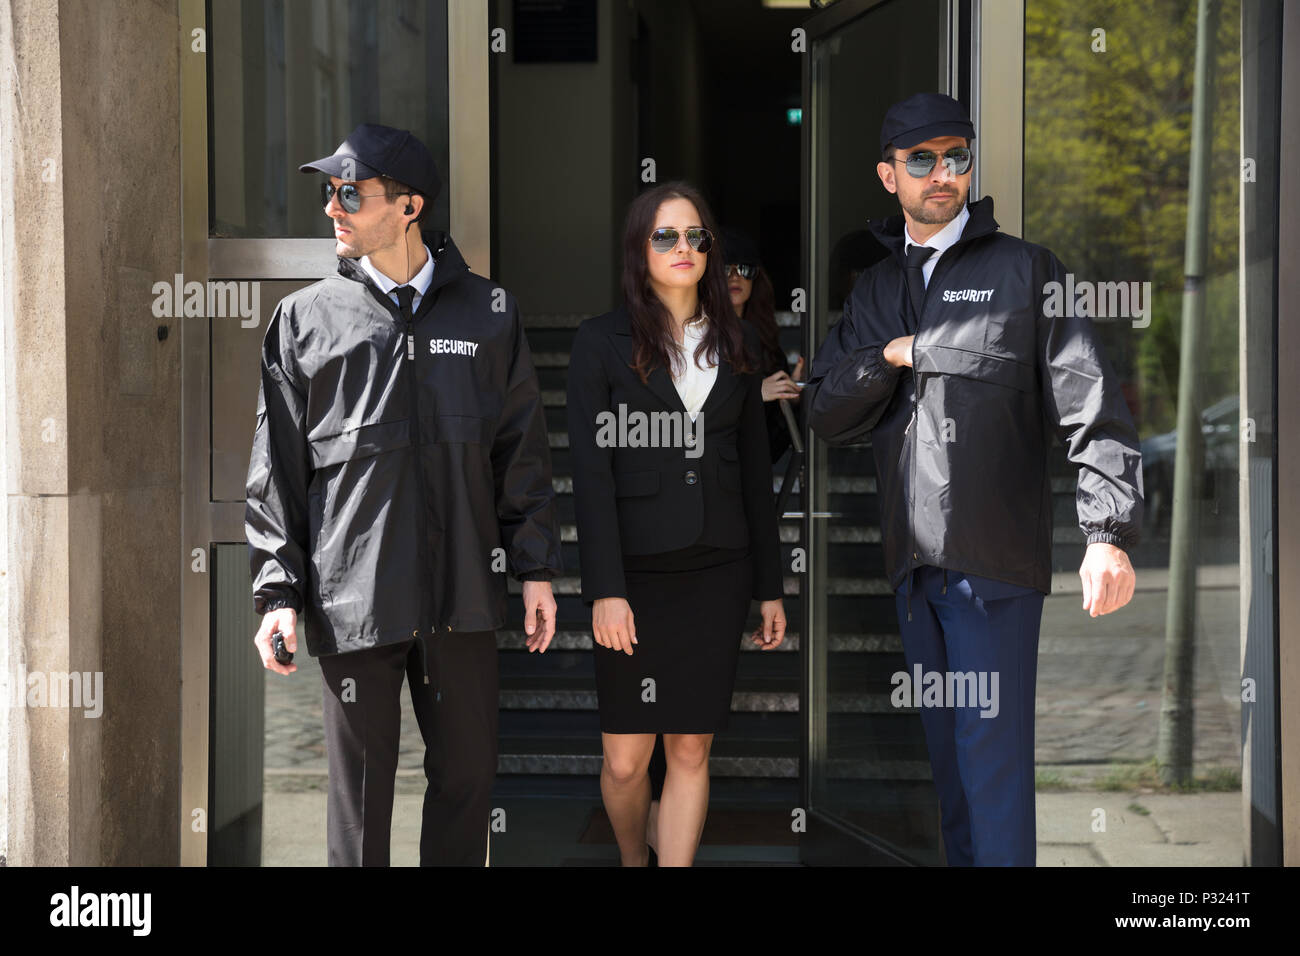 Young Businesswoman Stepping Out From Office Building With Her Bodyguards - Stock Image